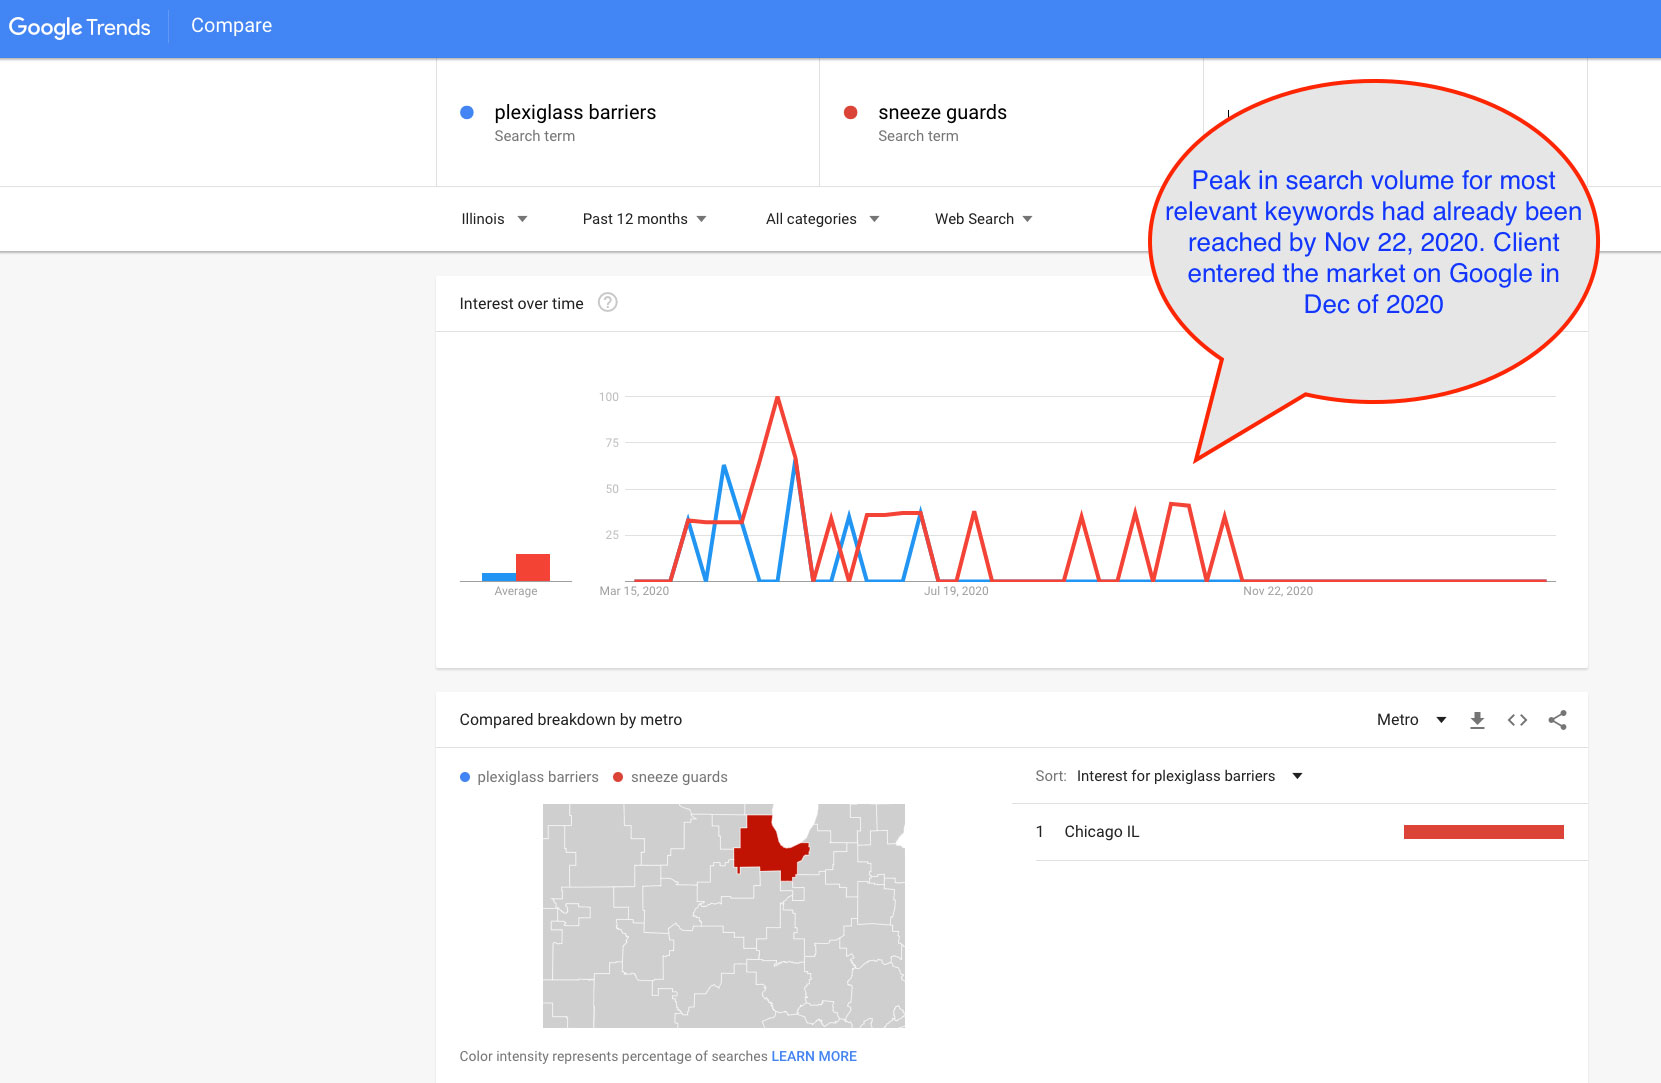 Google trends search volume shows the monthly search volume for the most important search terms. Don't blame Google for your business model that did not take this into account.